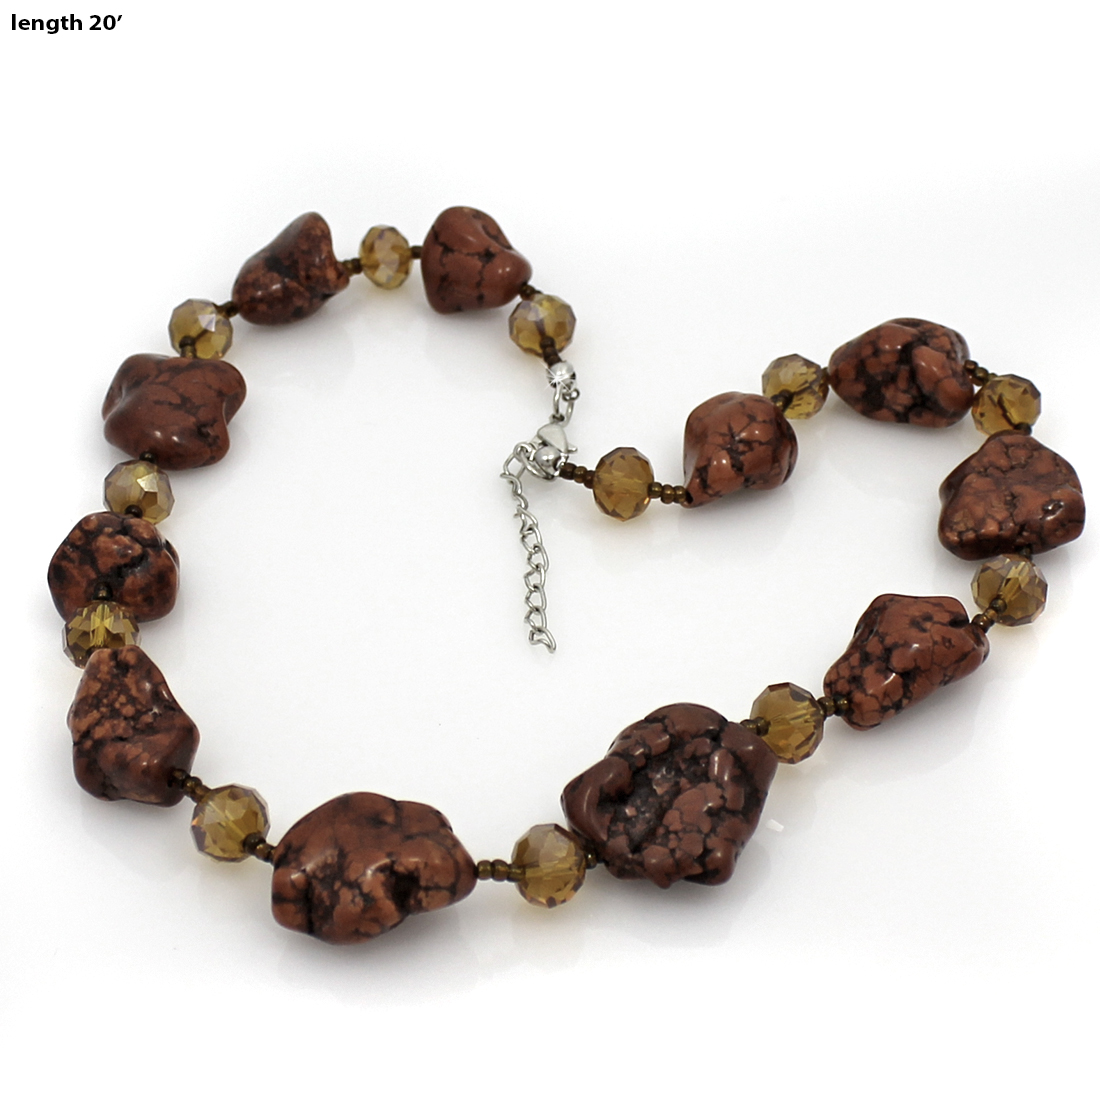 NKL01-BROWN - NKL01-BROWN WHOLESALE GENUINE CRYSTAL AND GLASS NECKLACE SET